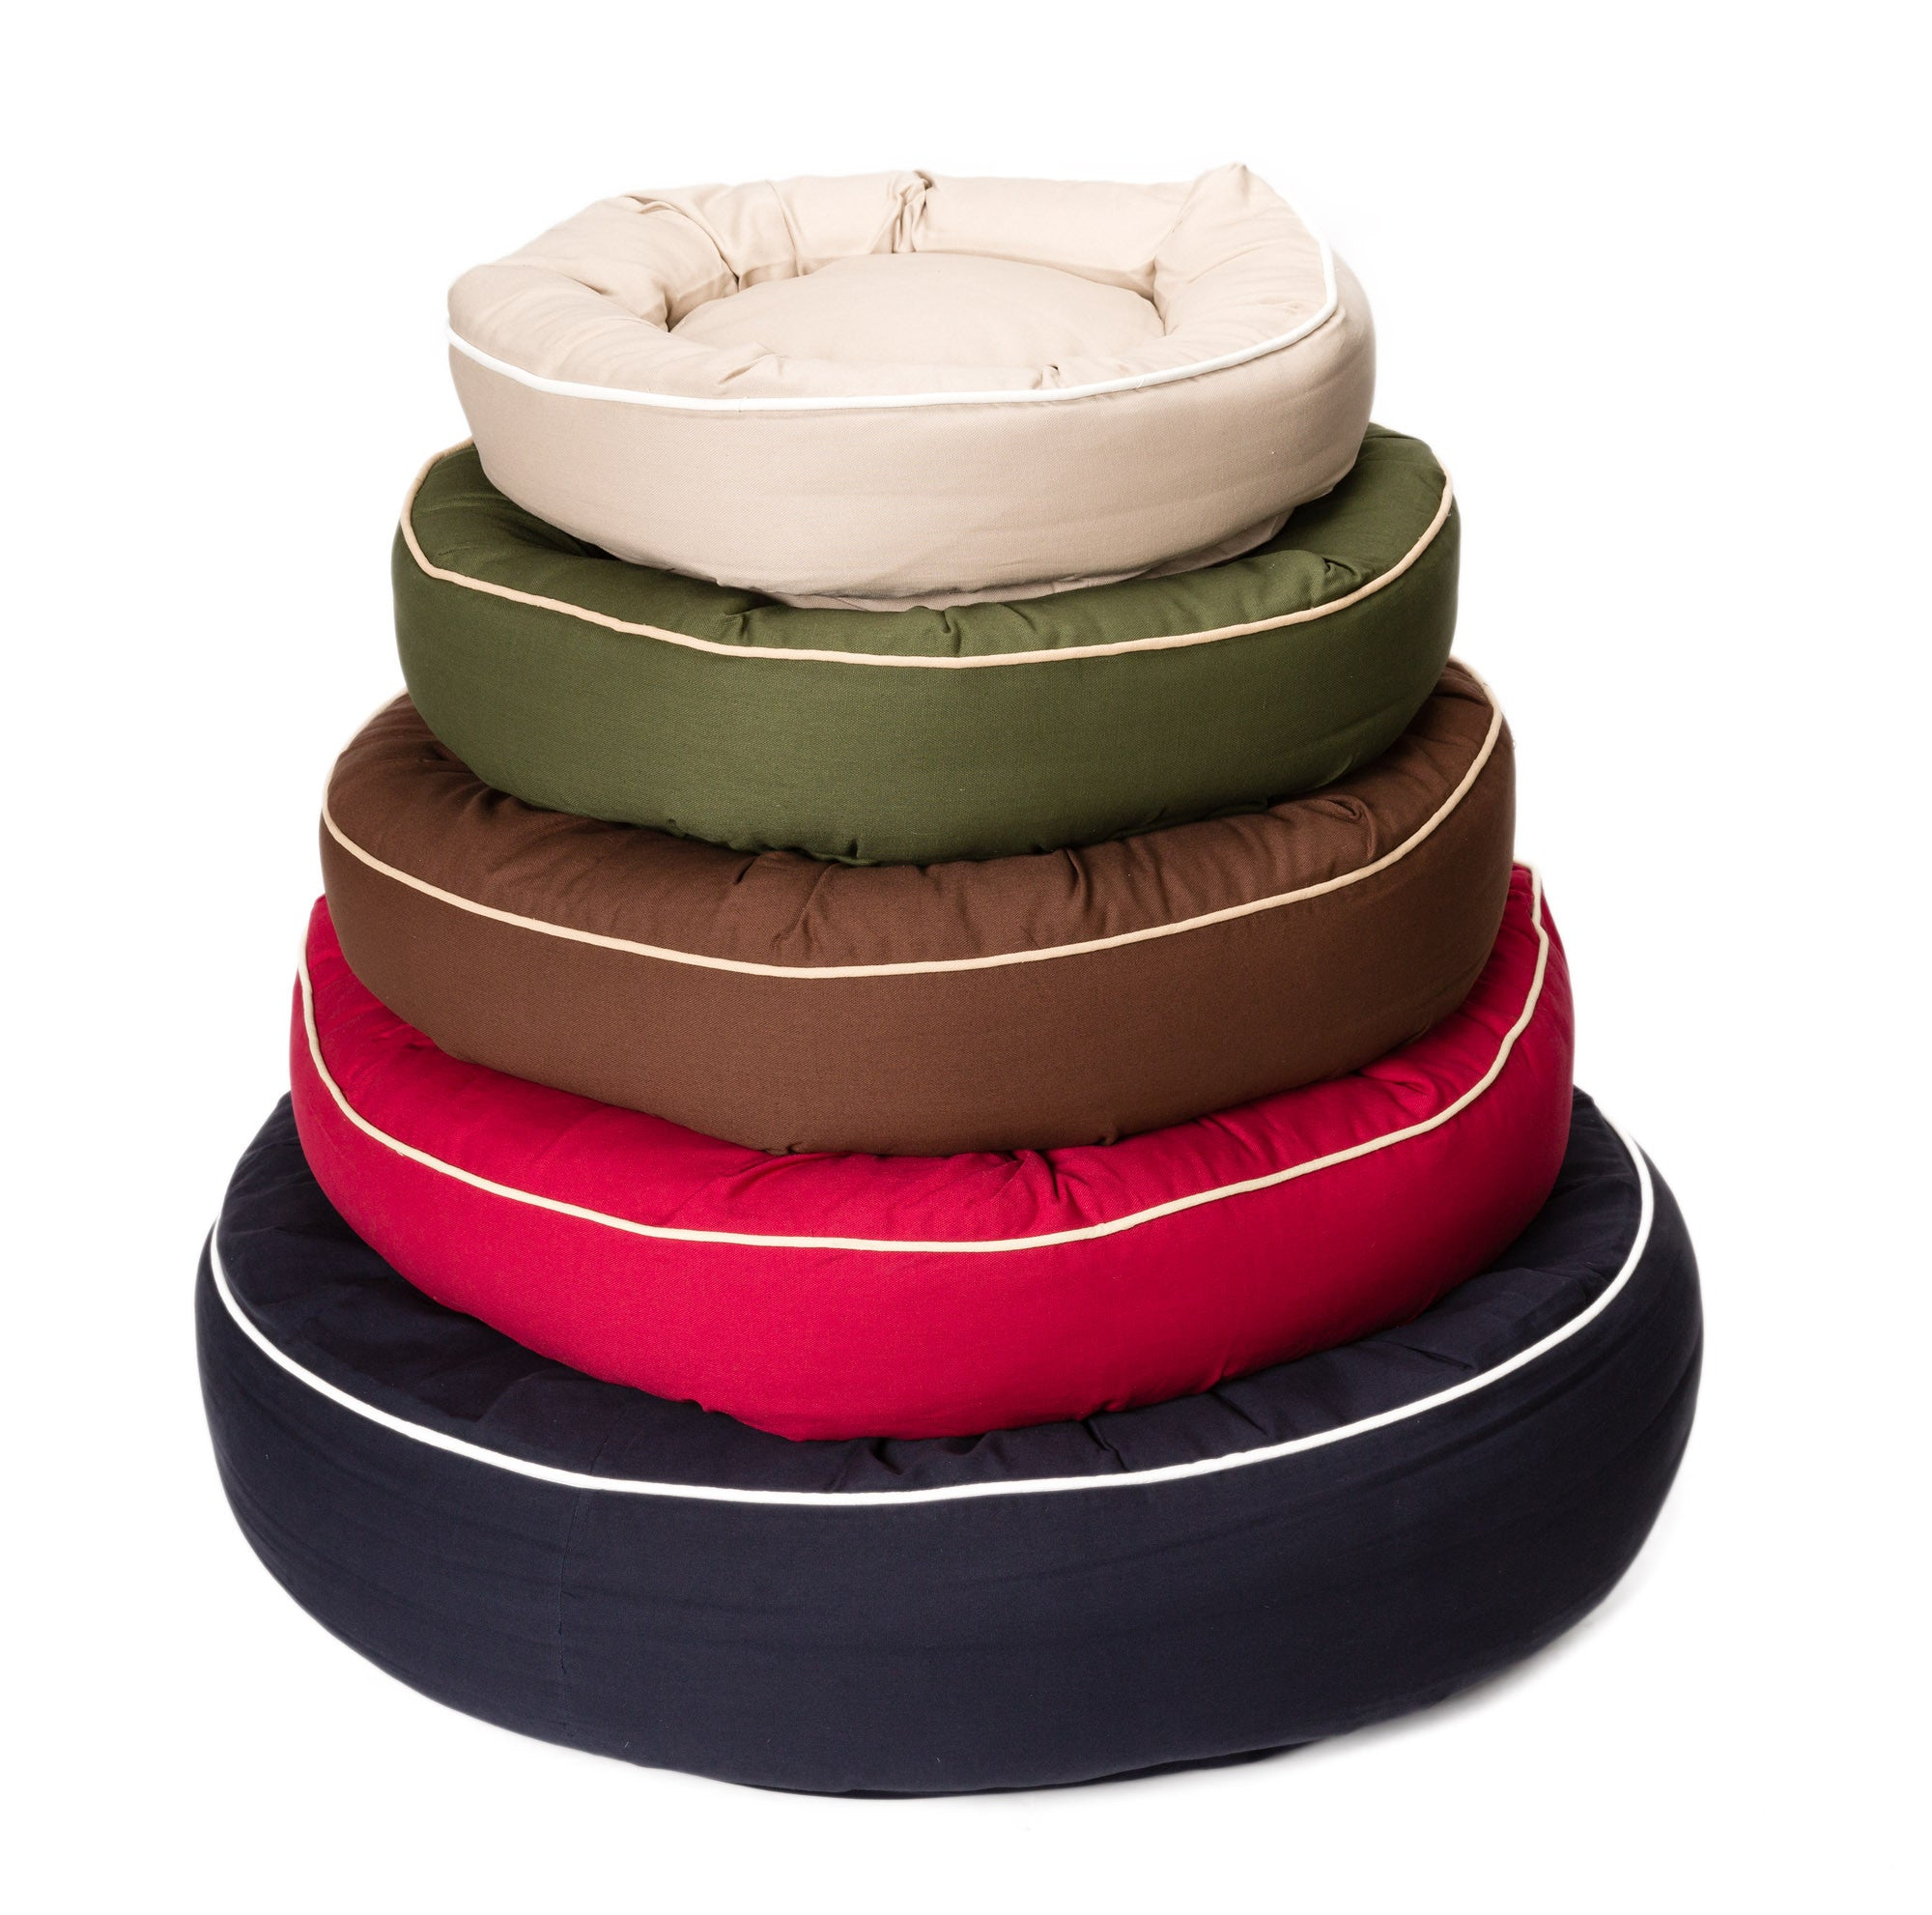 Canine Styles - Cotton Canvas Beds - Solid Colors w/Off White Piping - Dog Beds - 7 Color Options